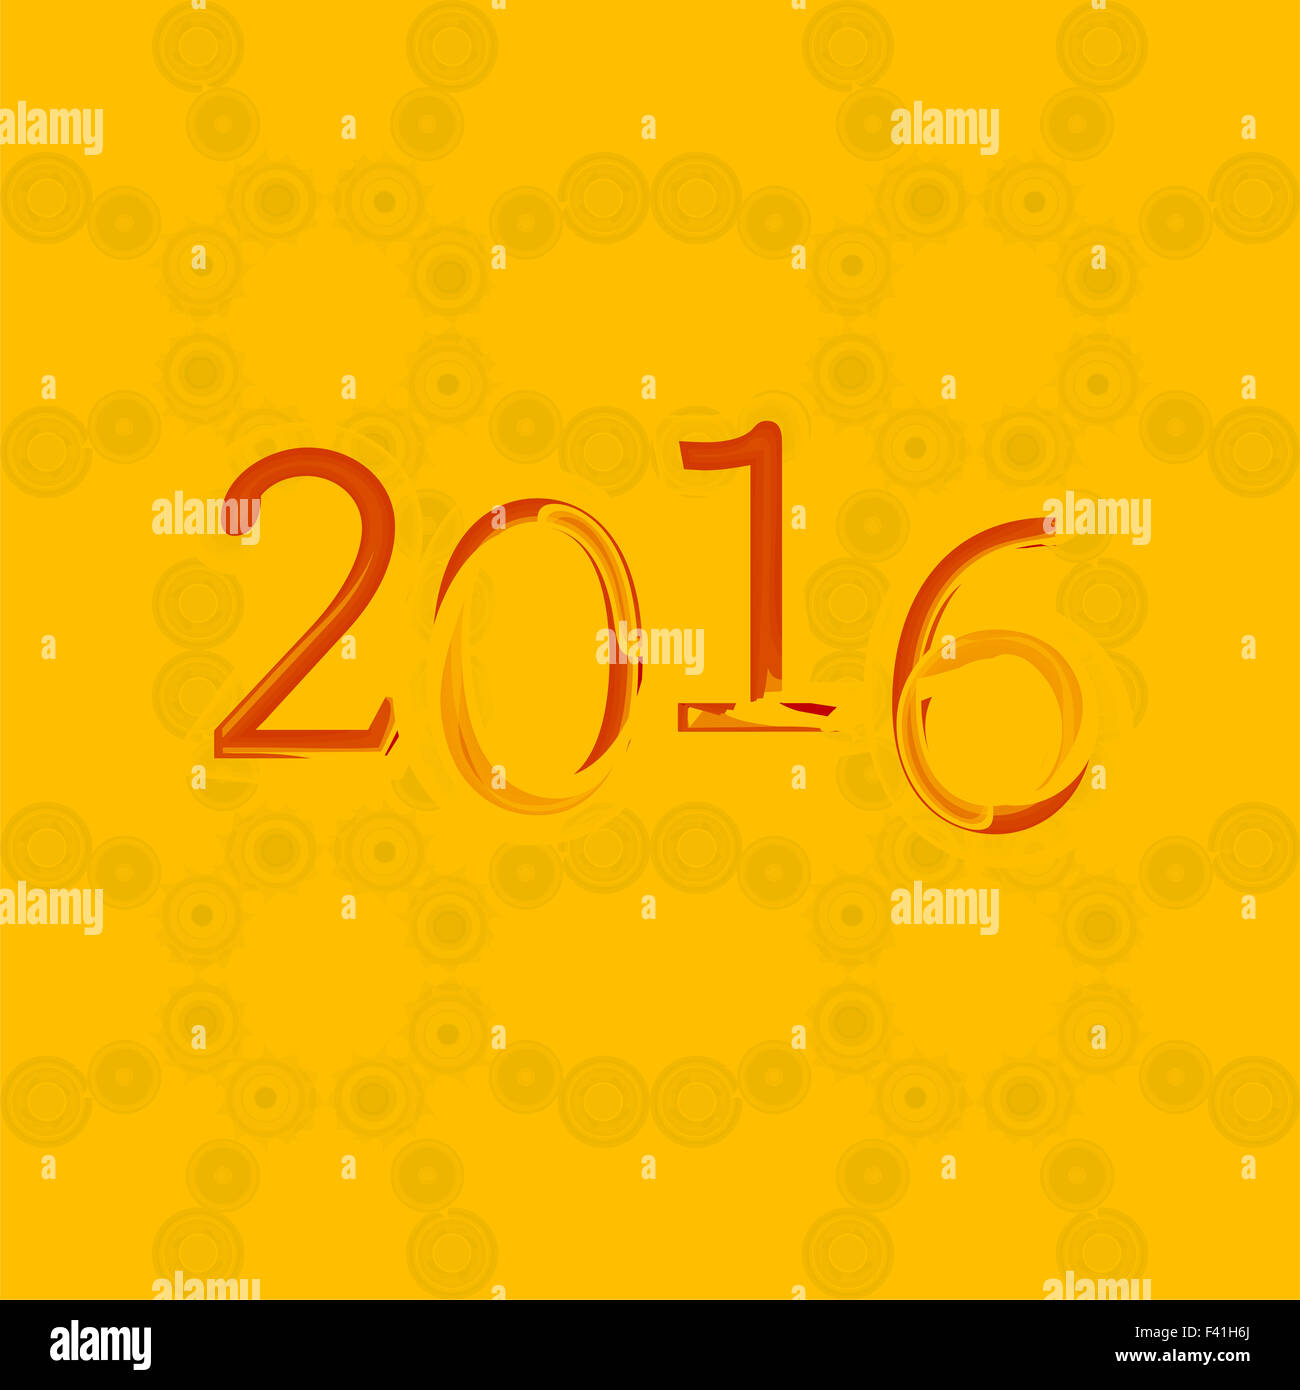 2016 new year and happy christmas background for your flyers stock 2016 new year and happy christmas background for your flyers invitation party posters greetings card brochure cover or gener stopboris Gallery